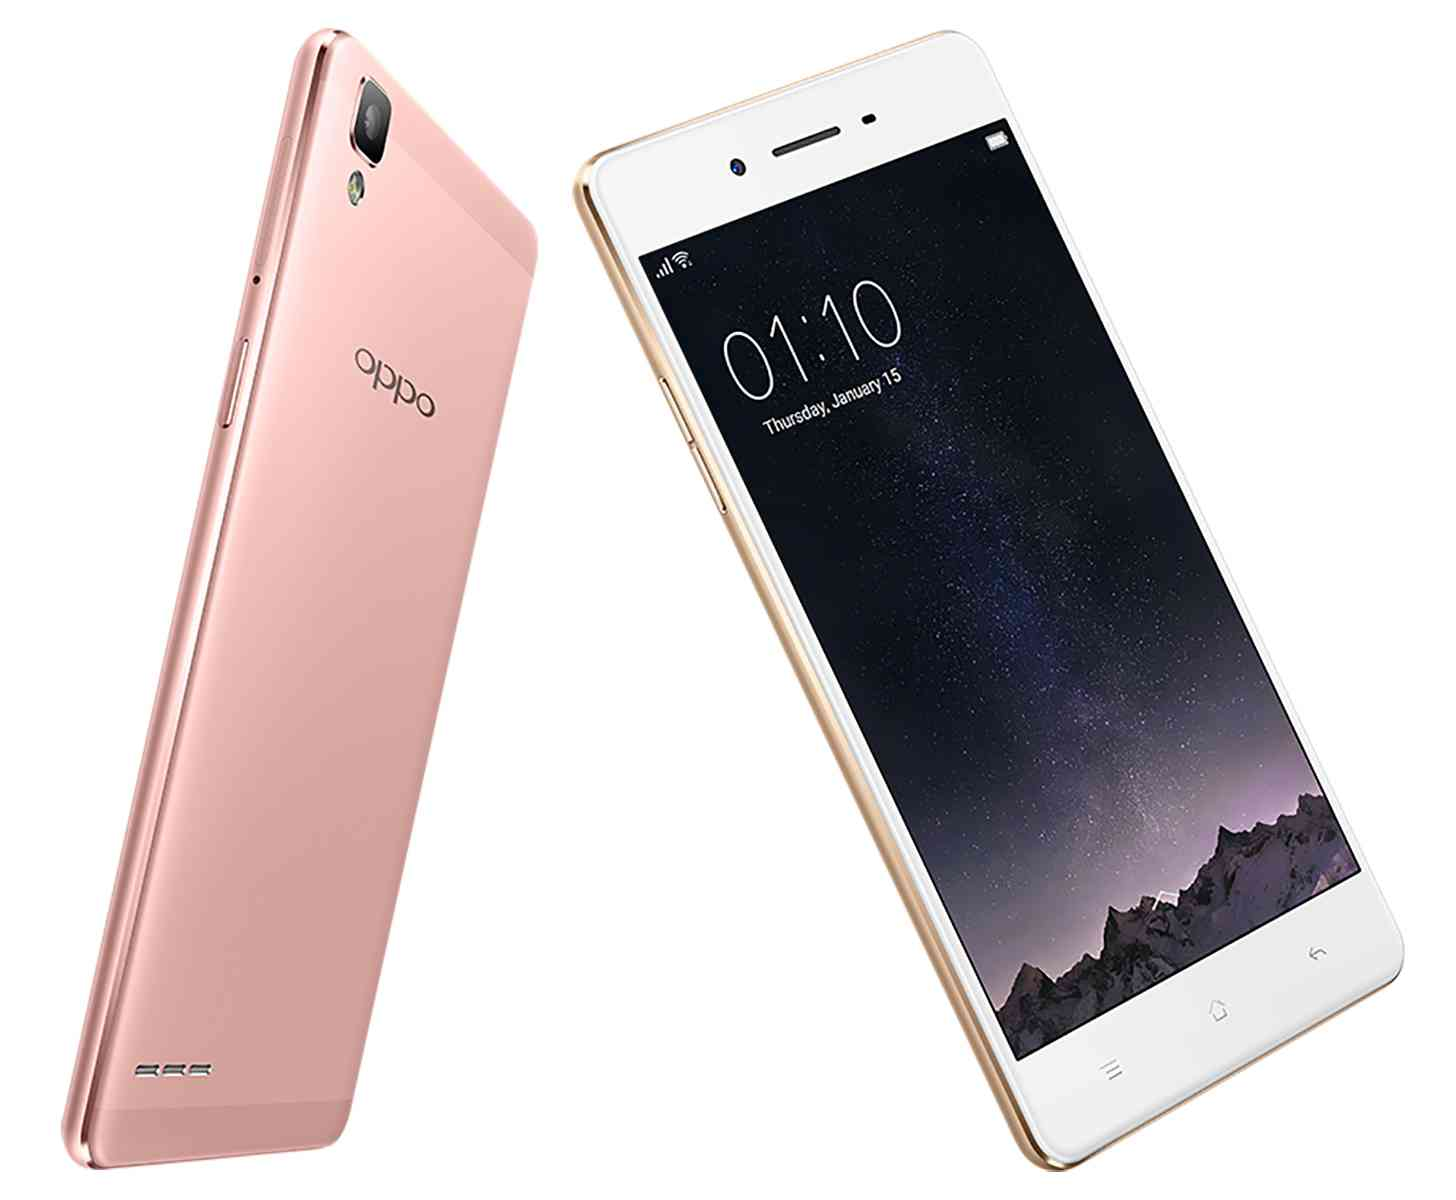 Oppo launches F1 and F1 Plus smartphones in India